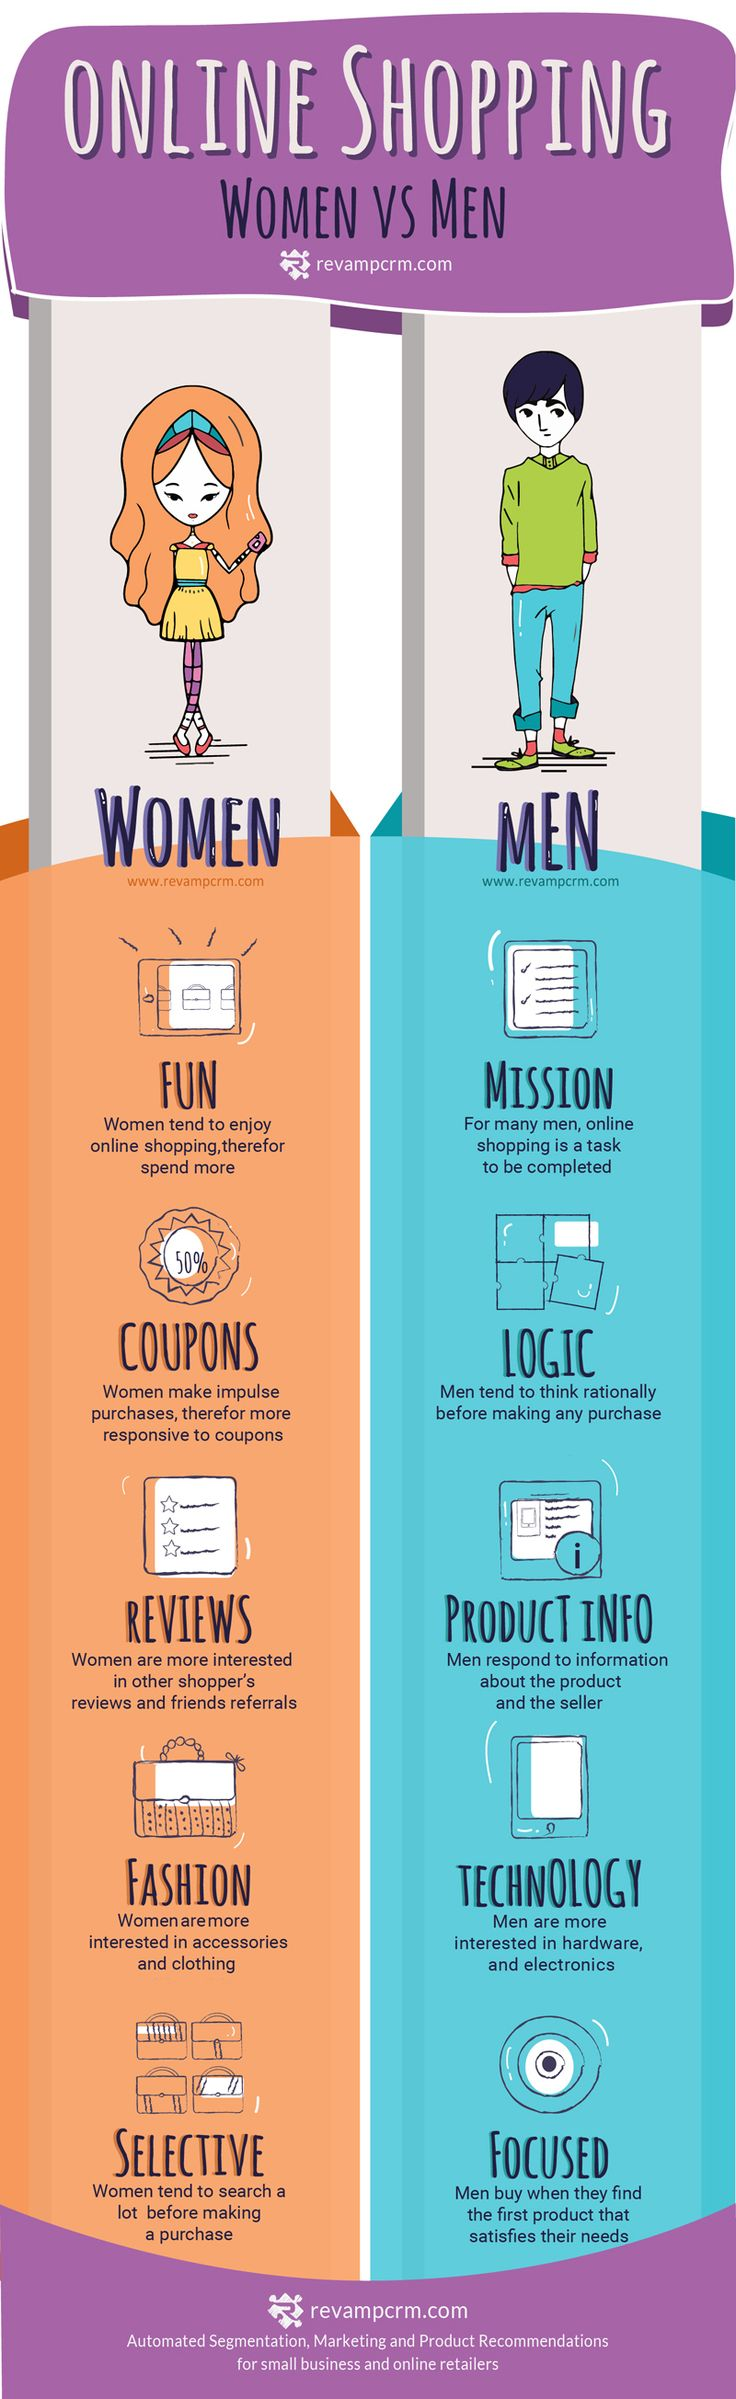 Online Shopping Women v Men: What Ecommerce Website Owners Need to Know [Infographic]